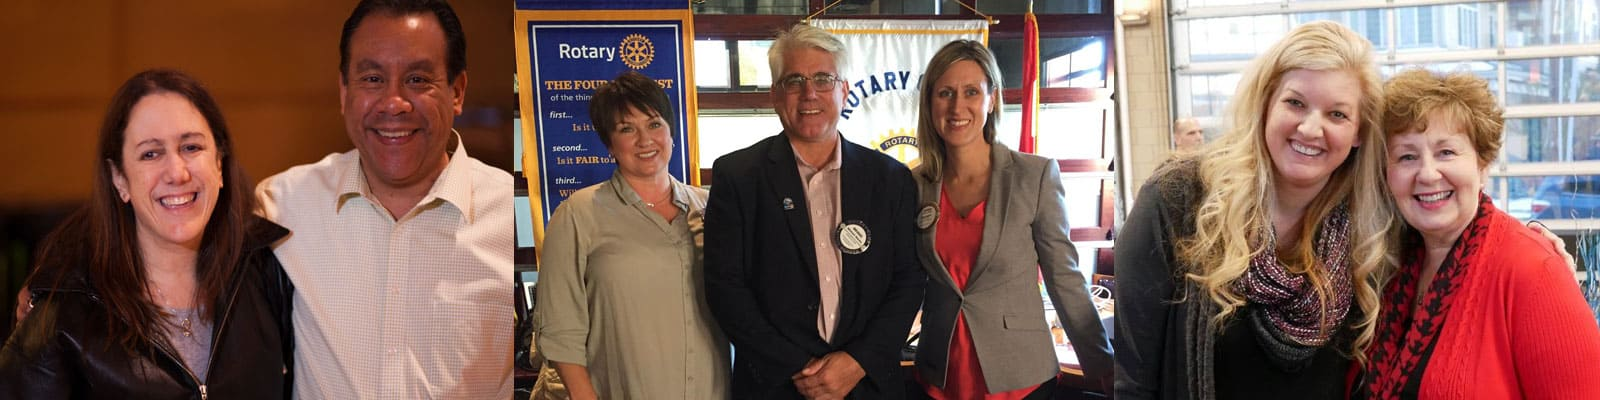 Puyallup South Hill Rotary Membership